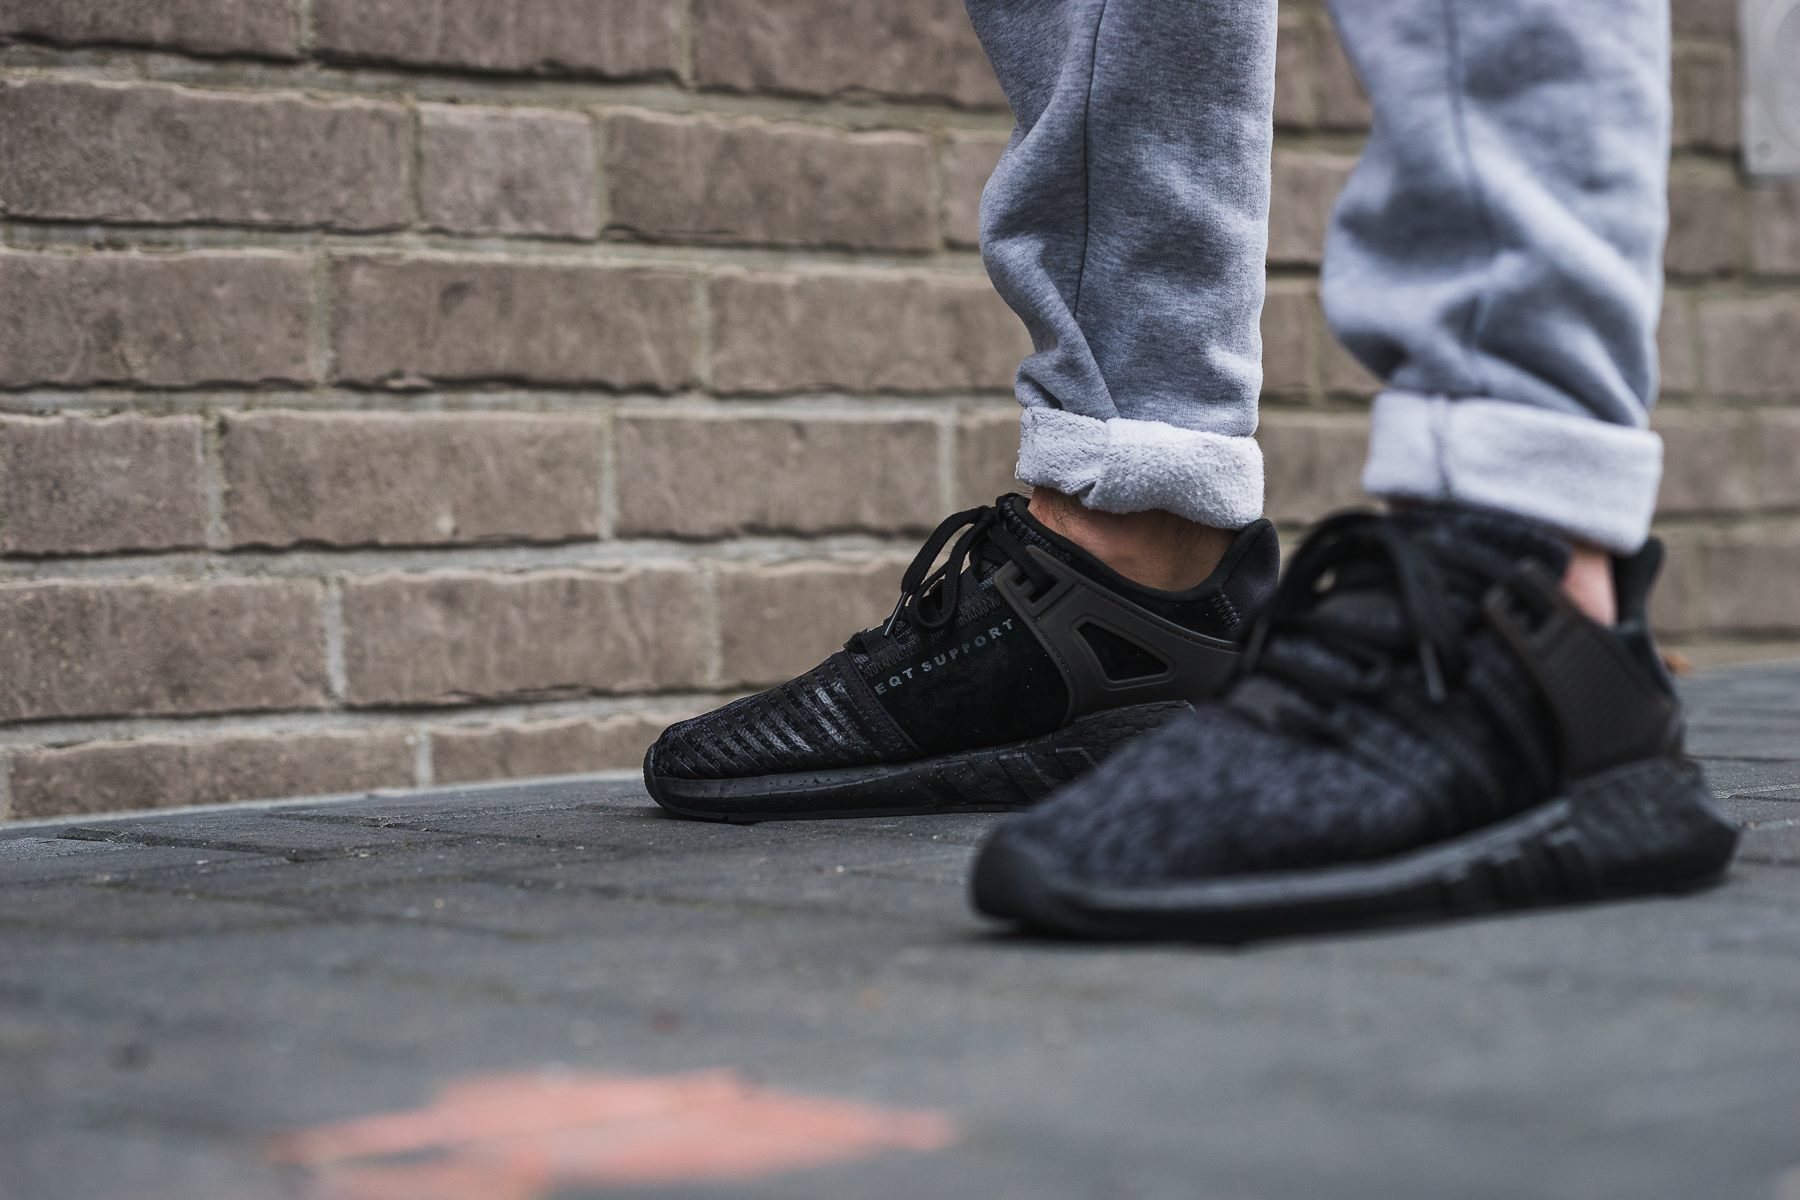 meet special sales online here Release Reminder: adidas EQT Support 93/17 Triple Black ...